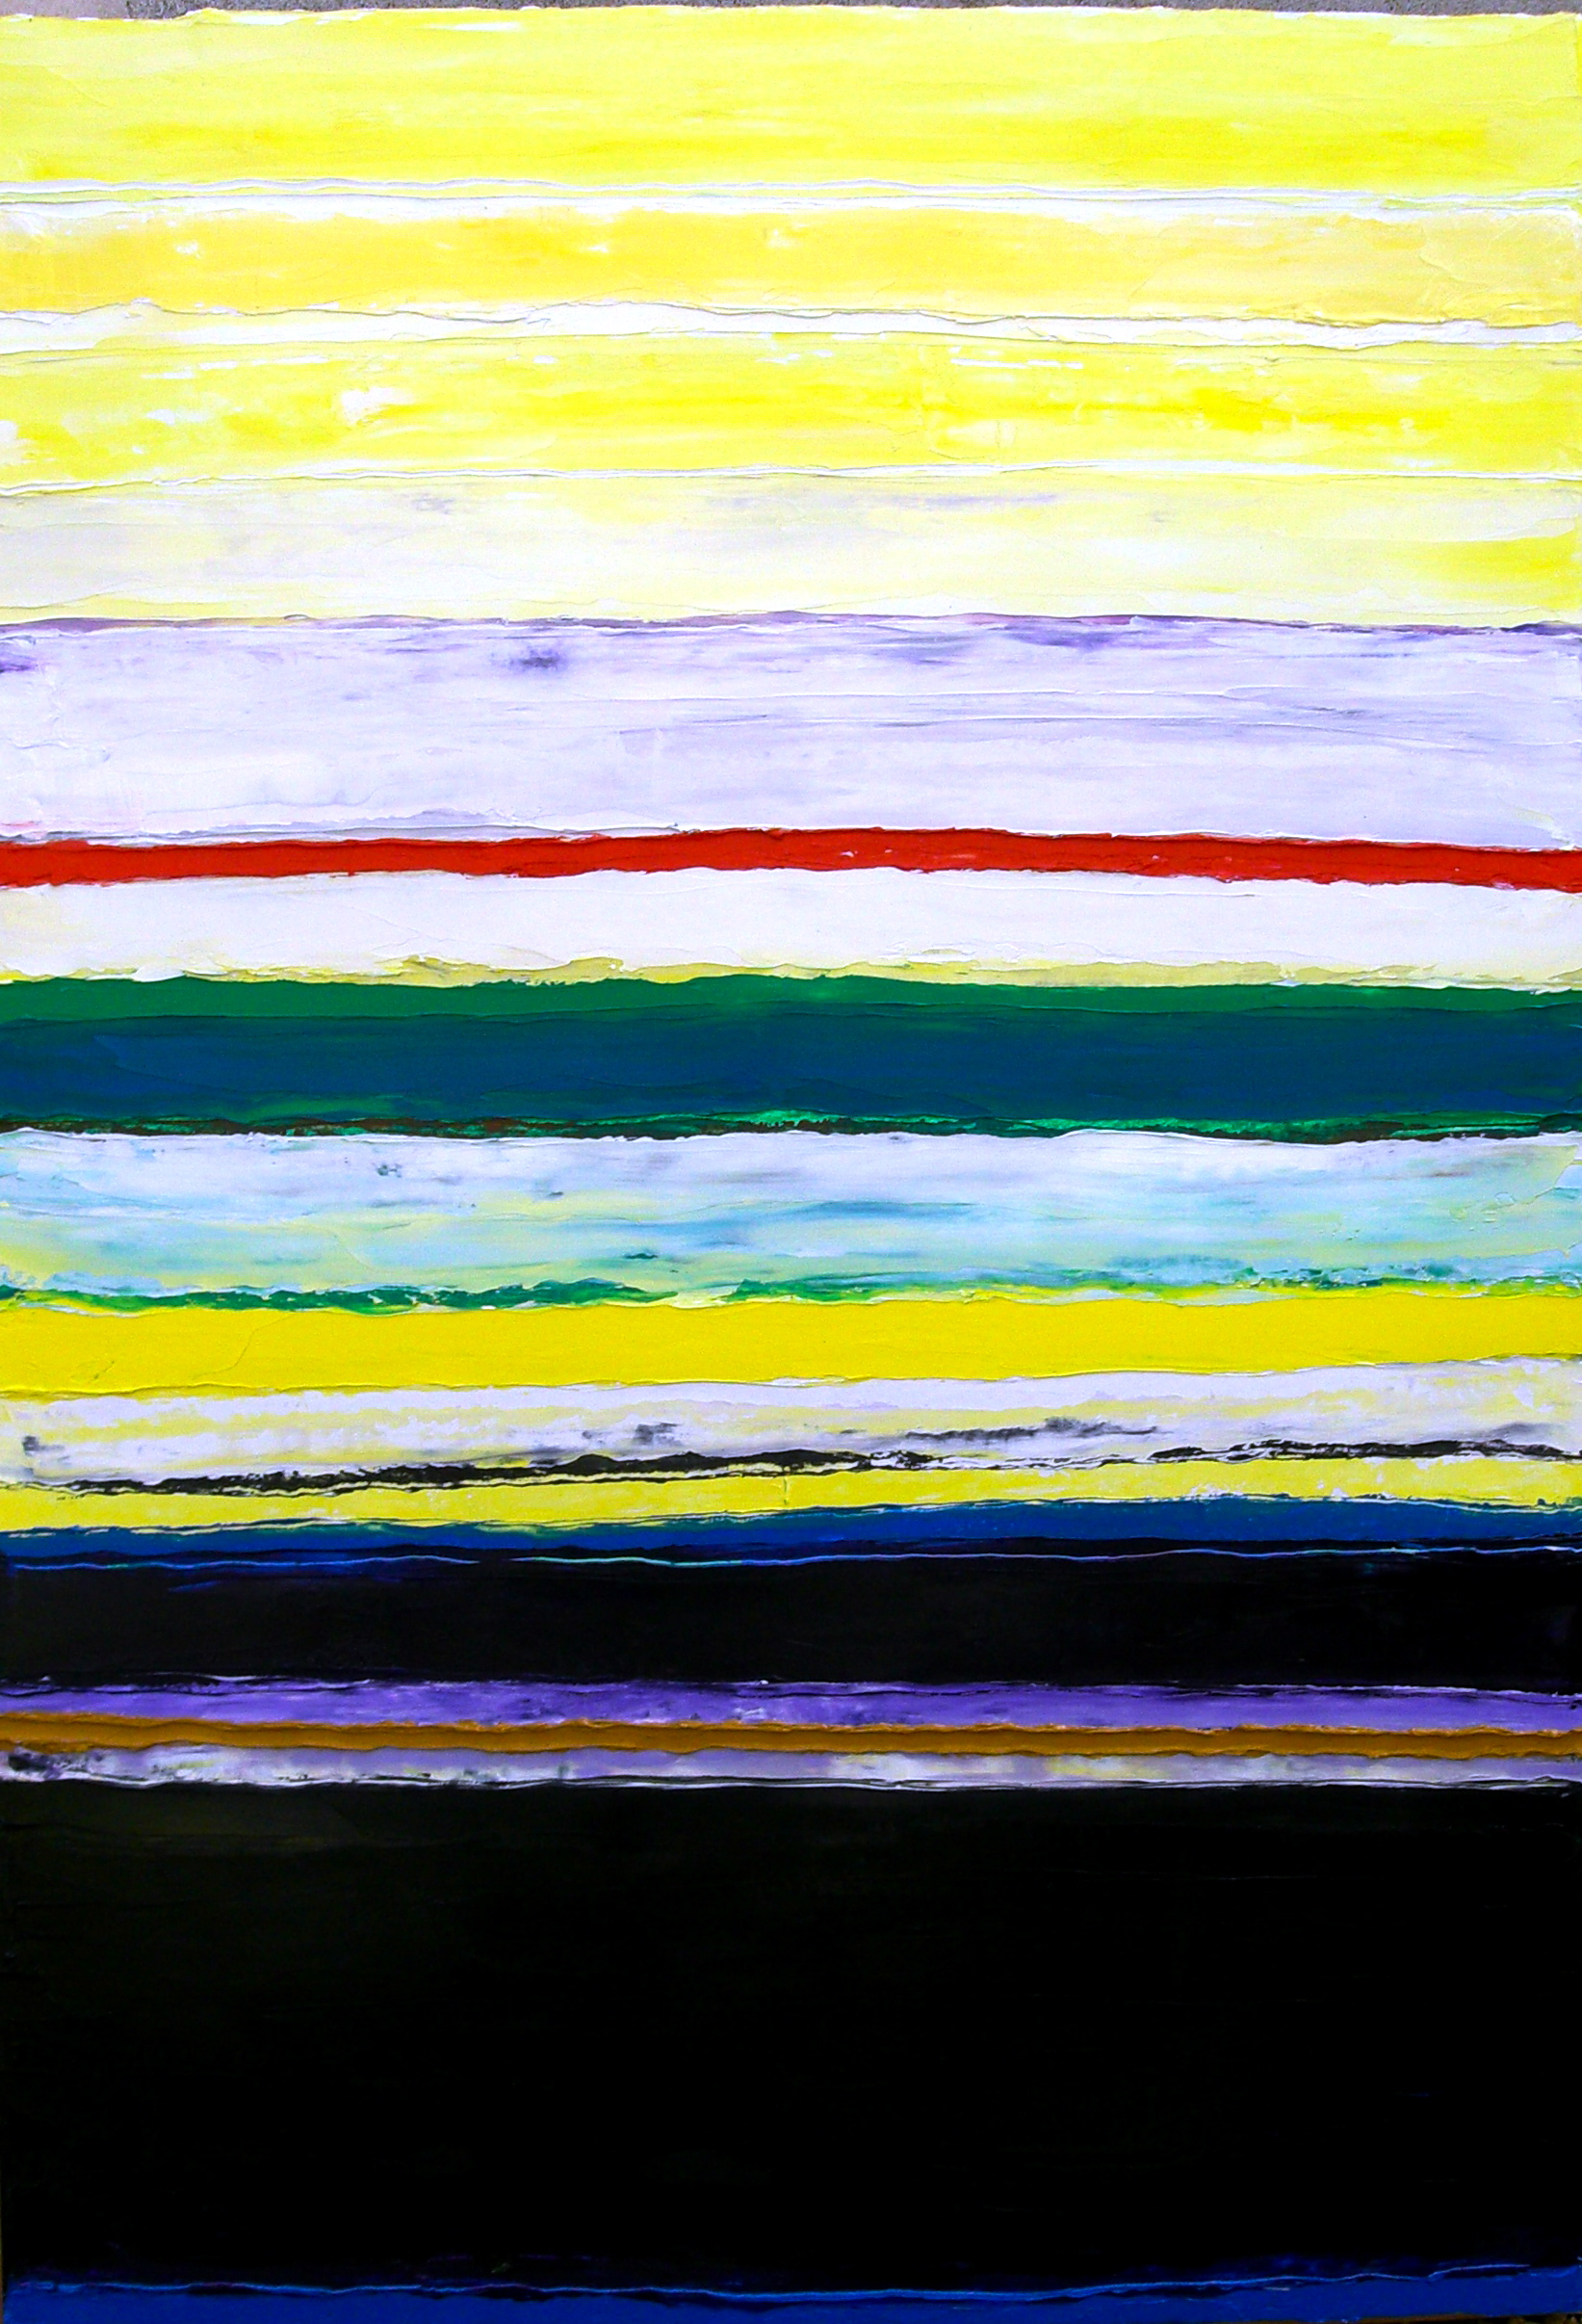 Middle Horizon 2, 2008